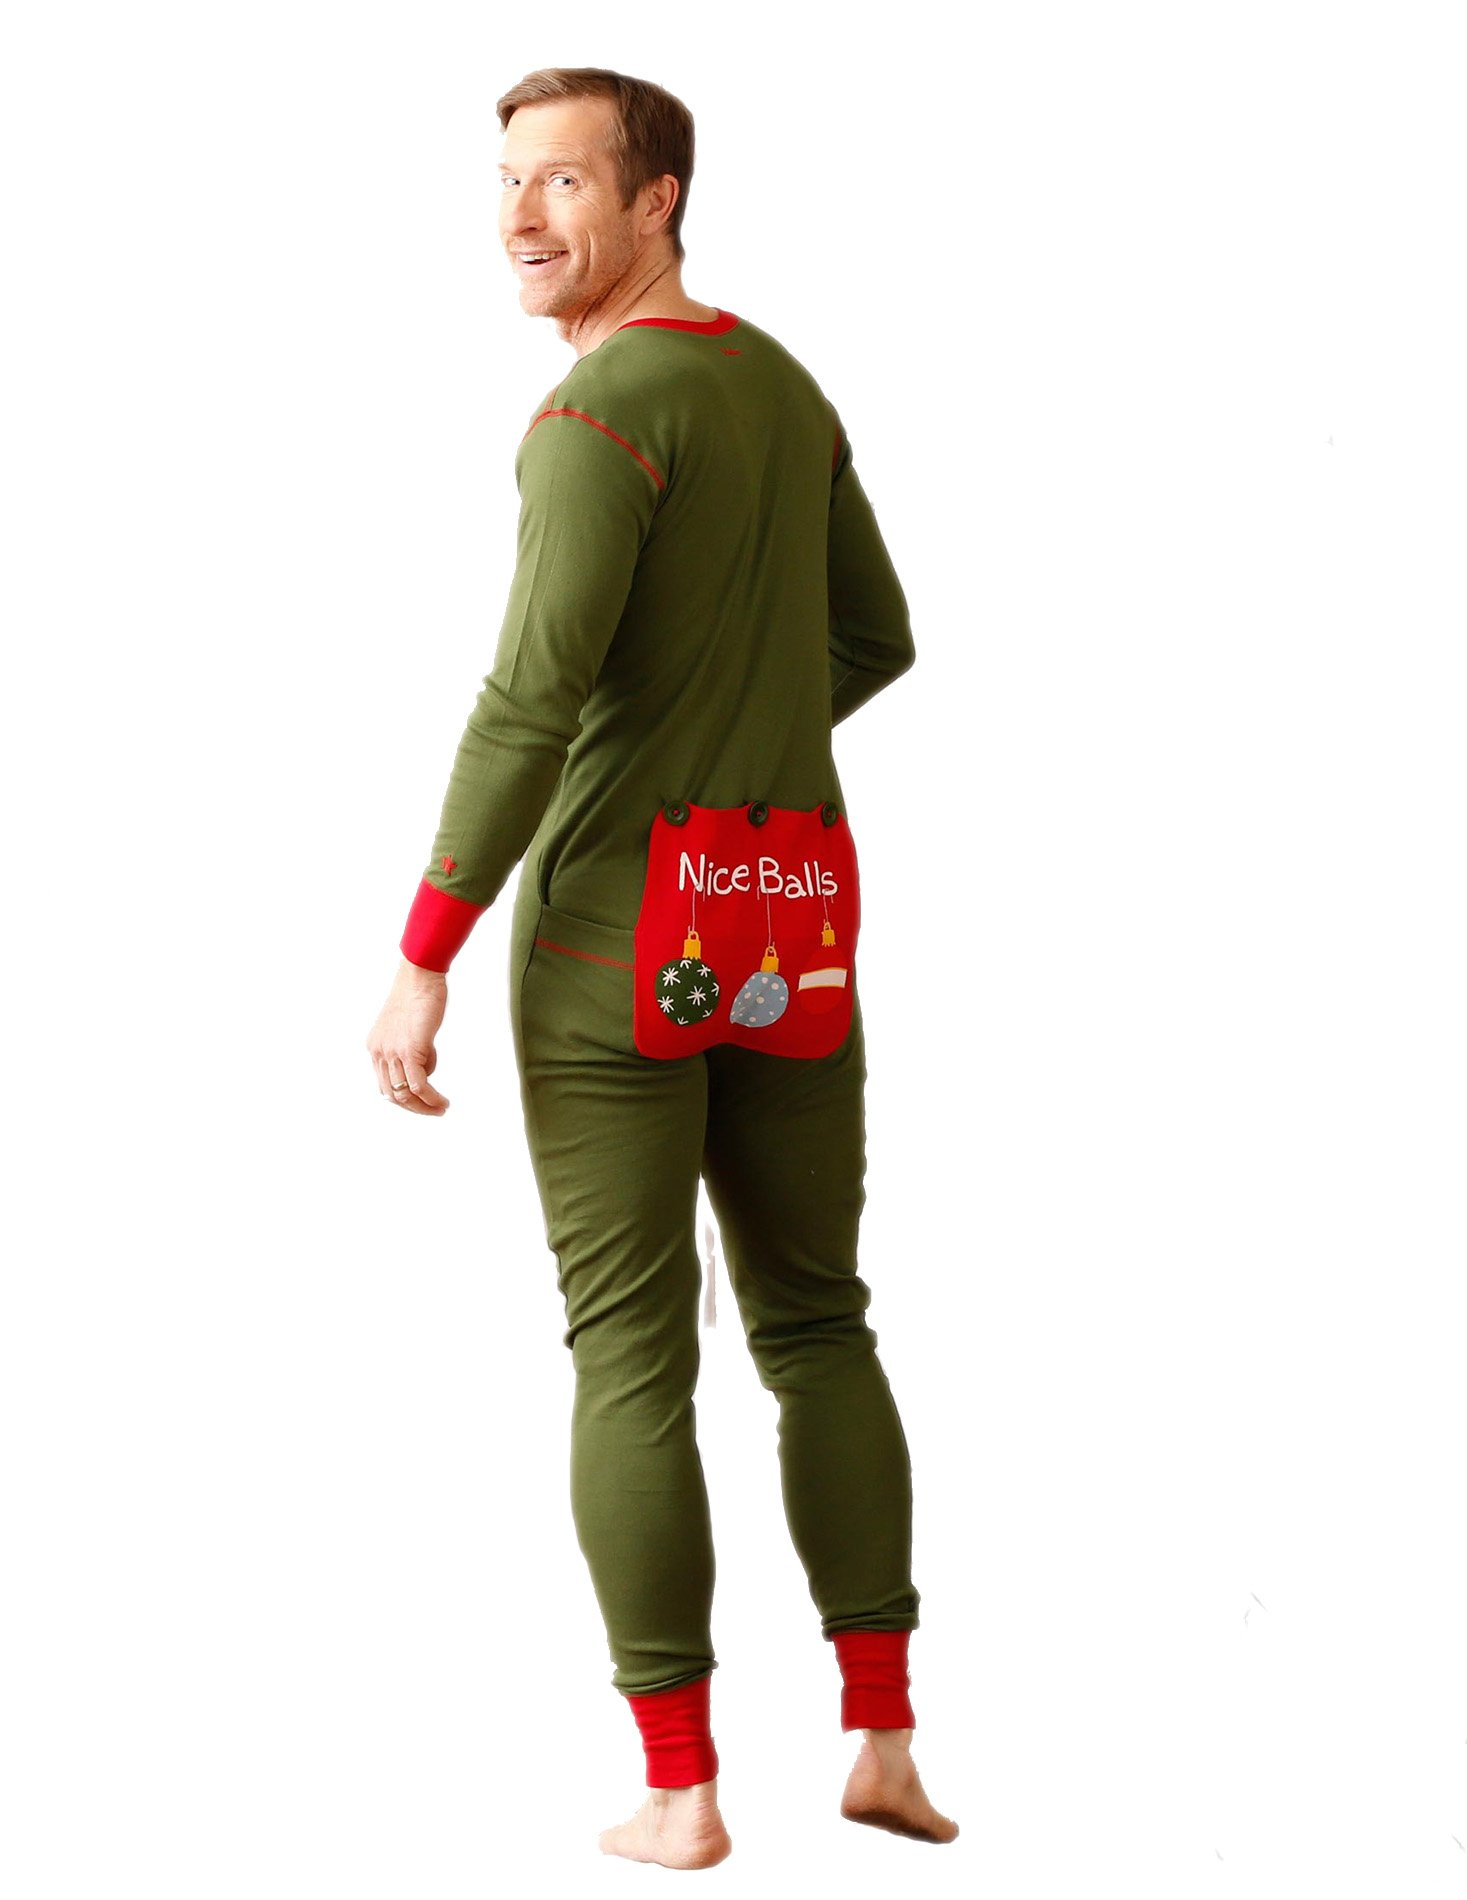 """Nice Balls"" Adult/Unisex Holiday Union Suit Christmas onesie pajama"